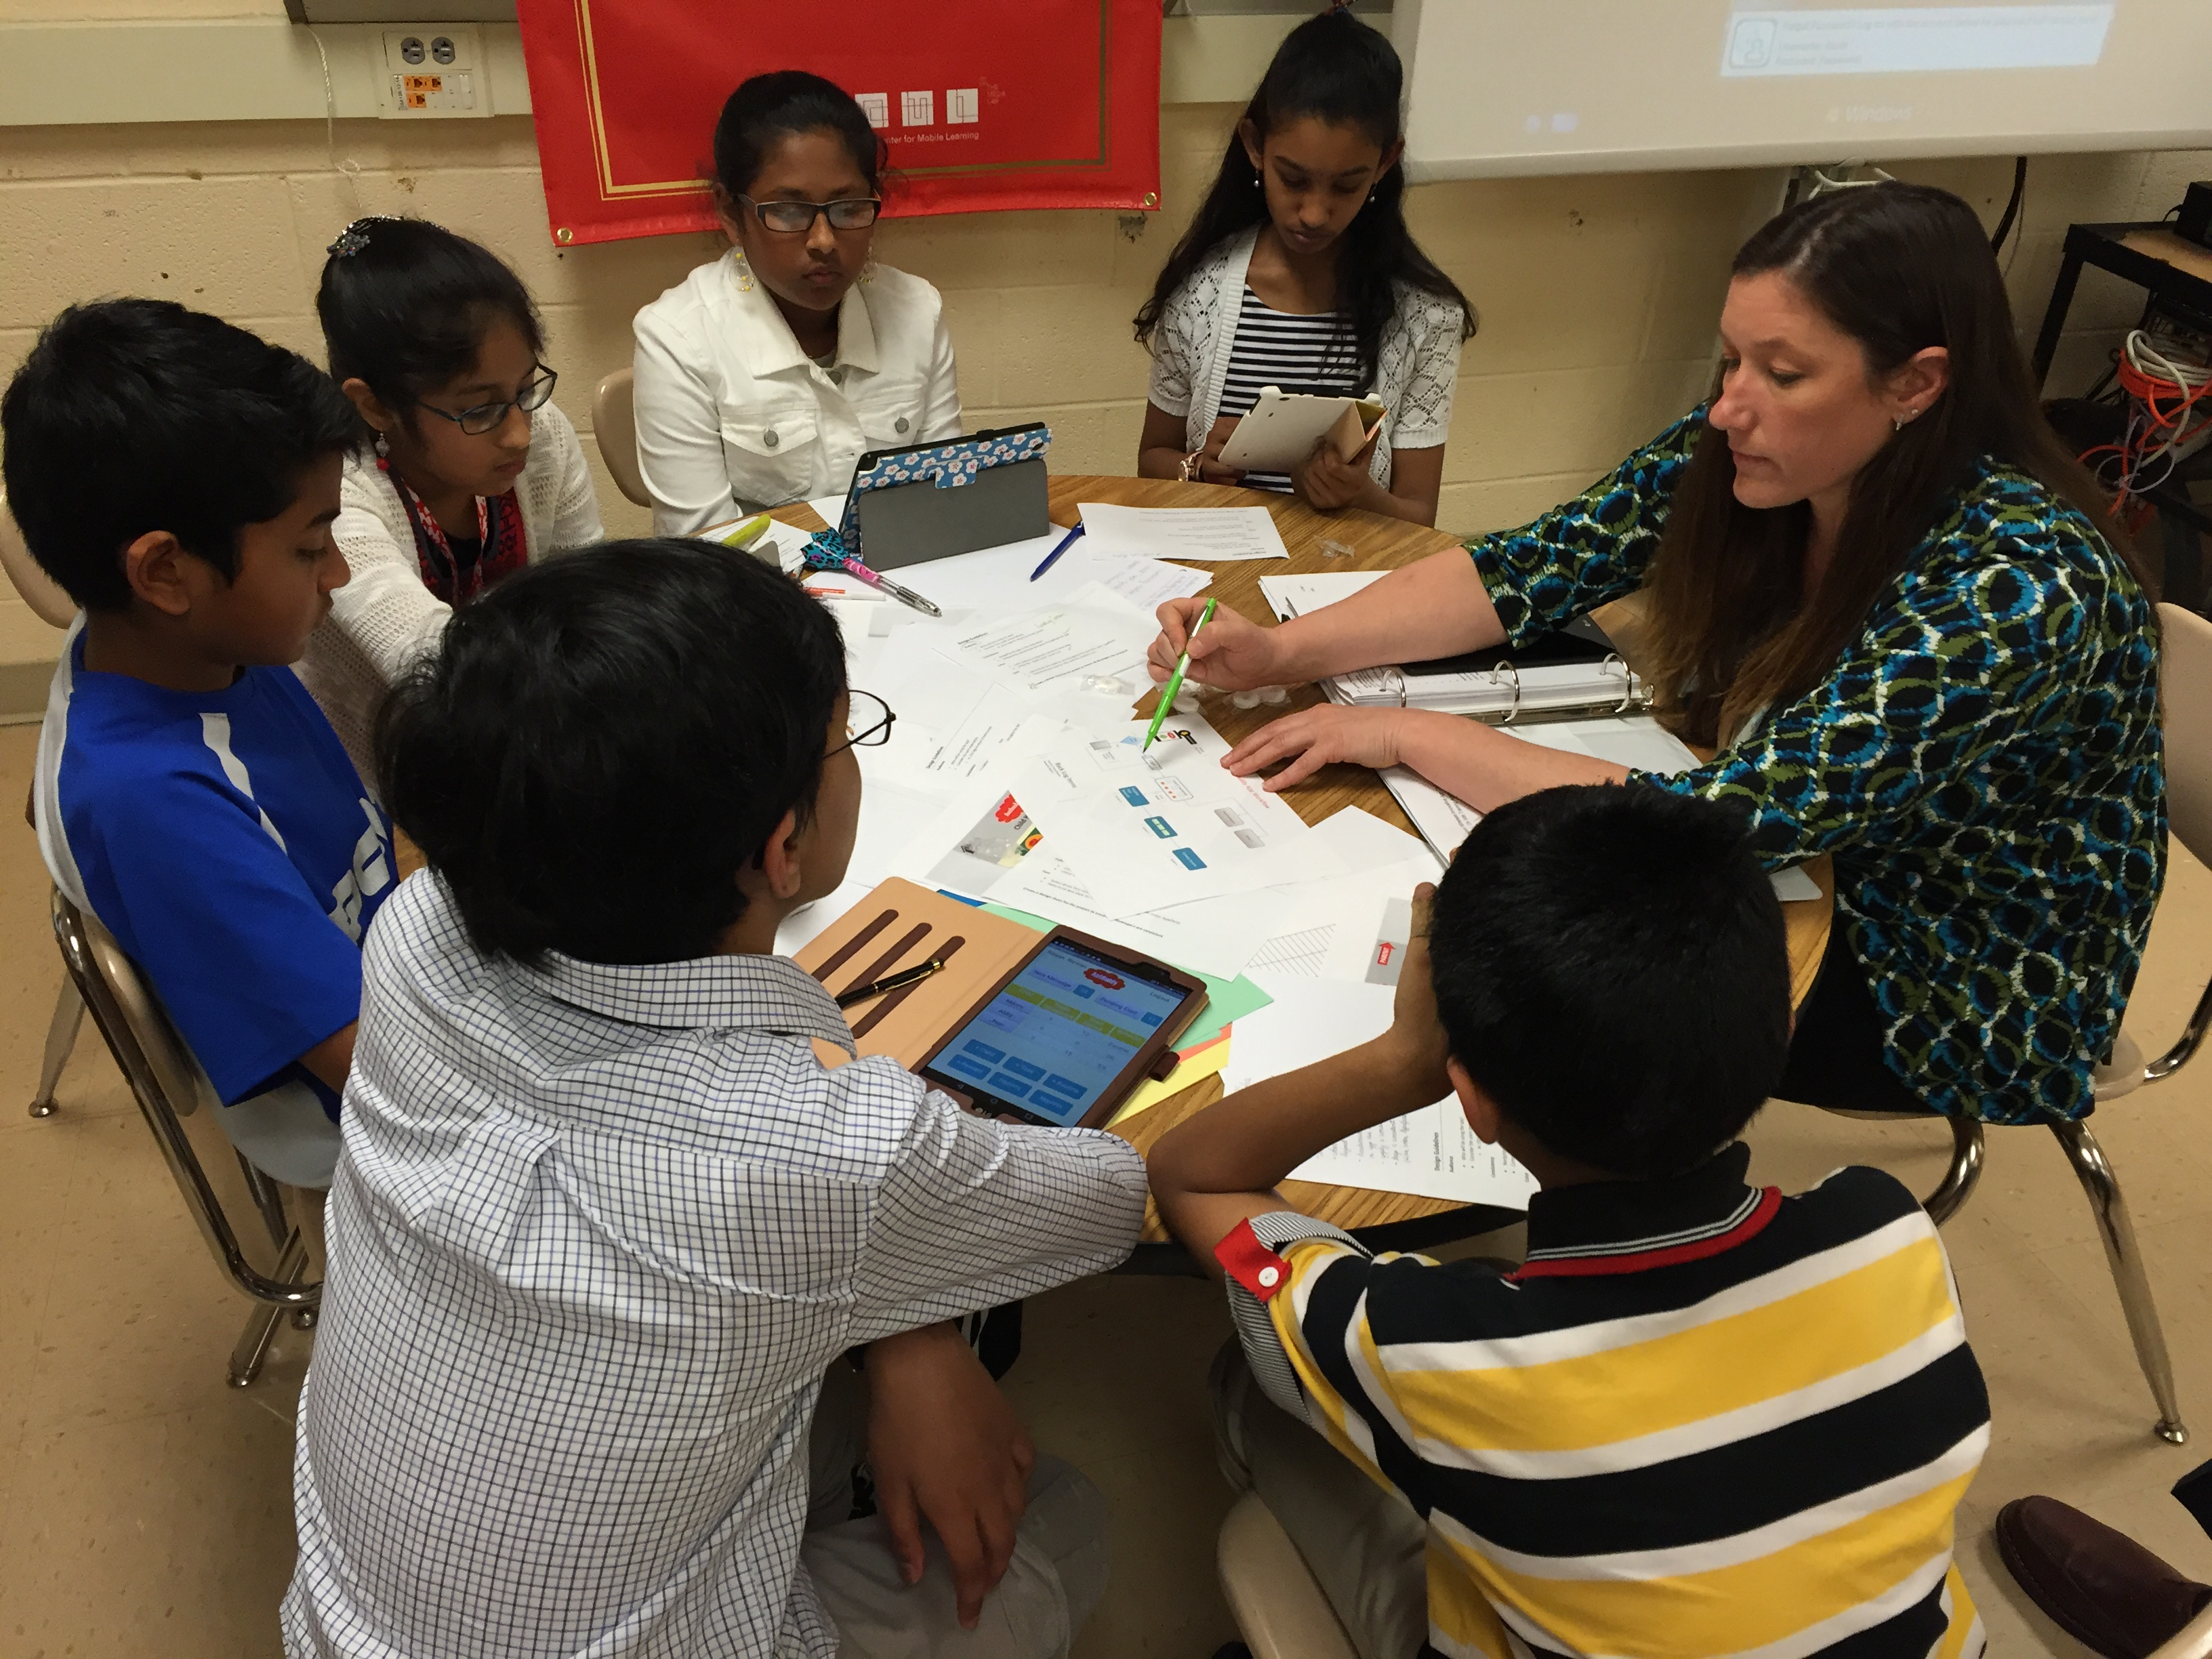 Local students take on task of building app for autistic kids